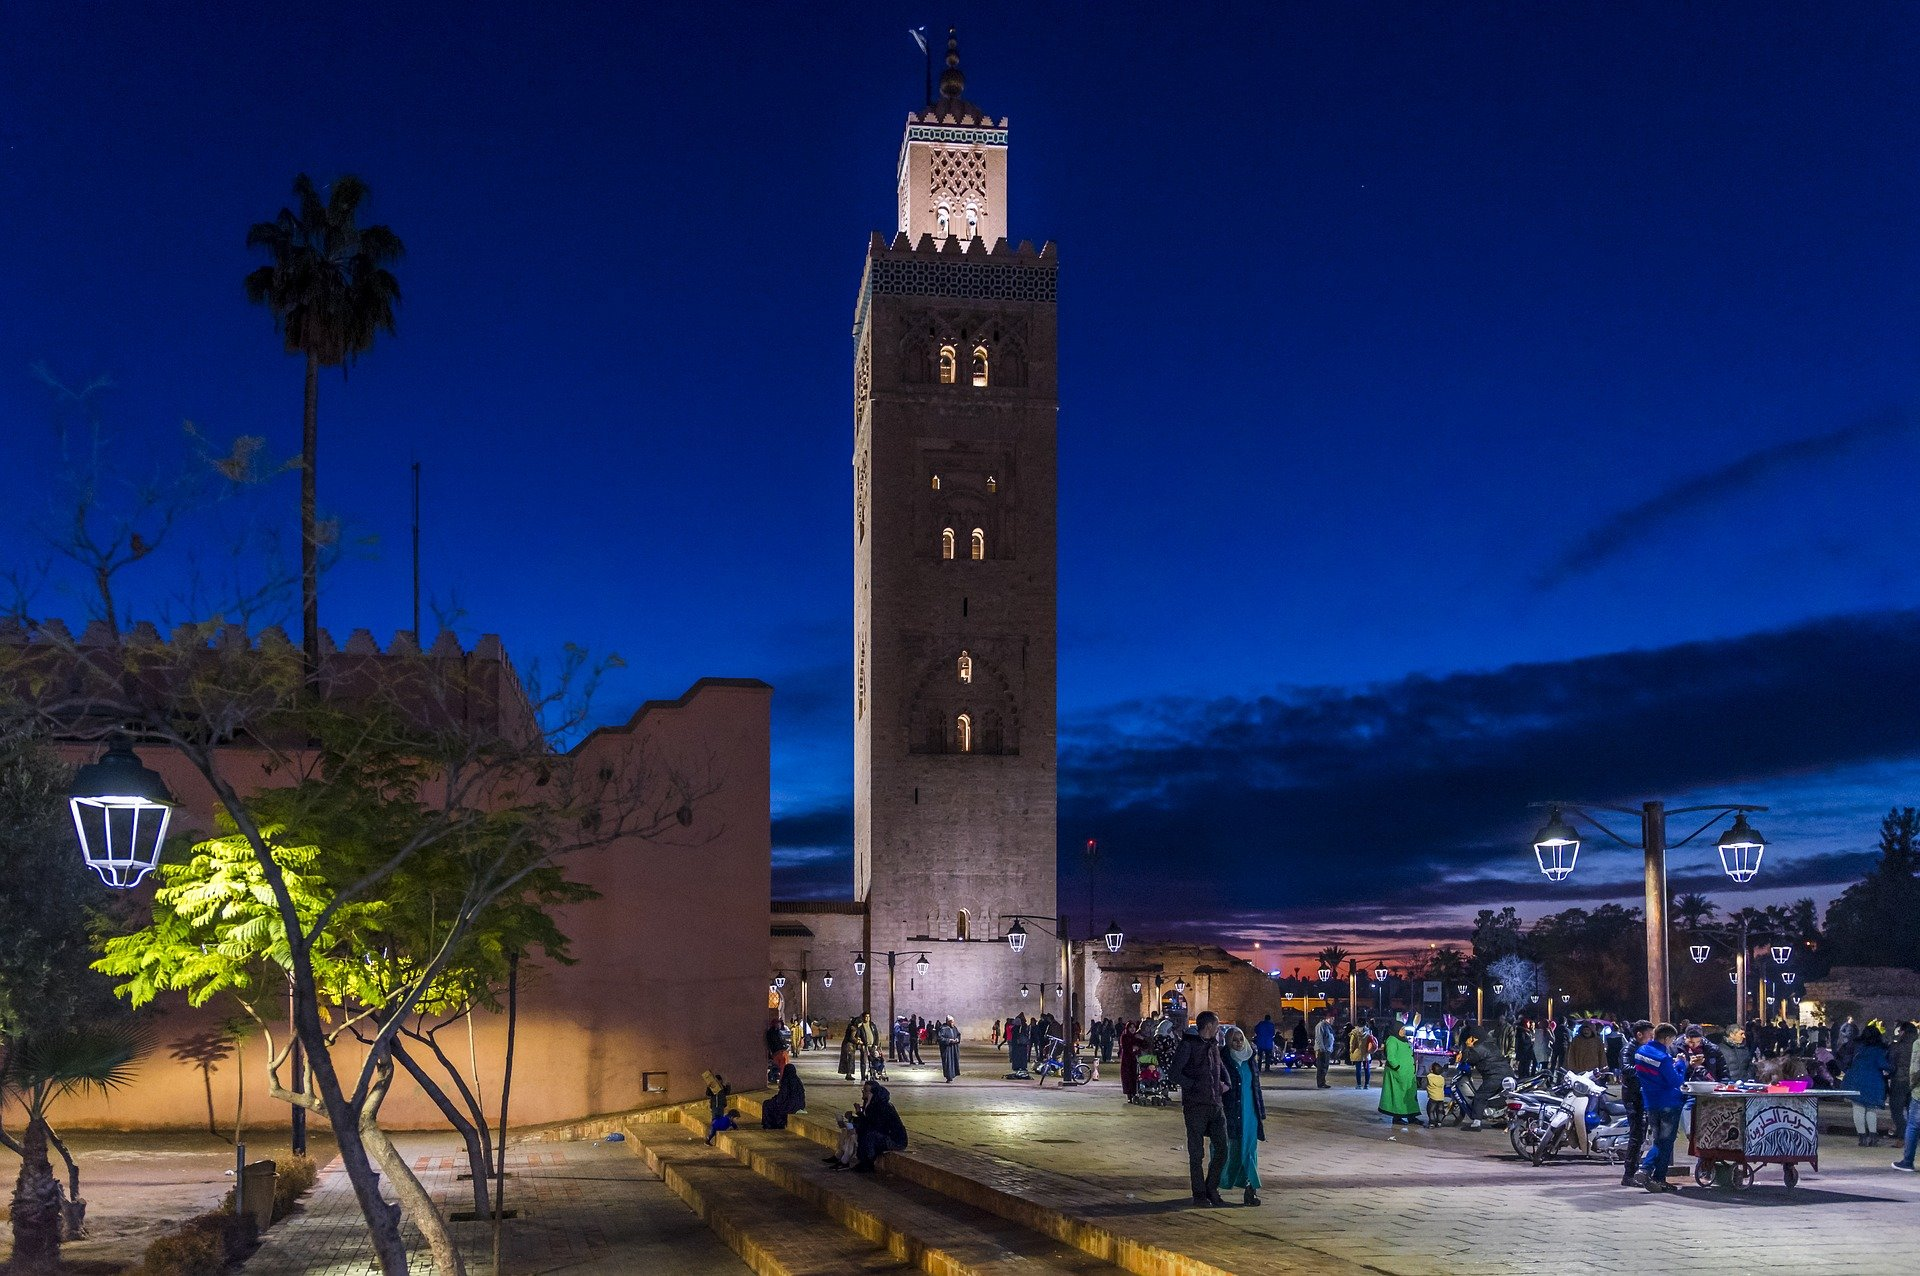 the Medina of Marrakech during the night